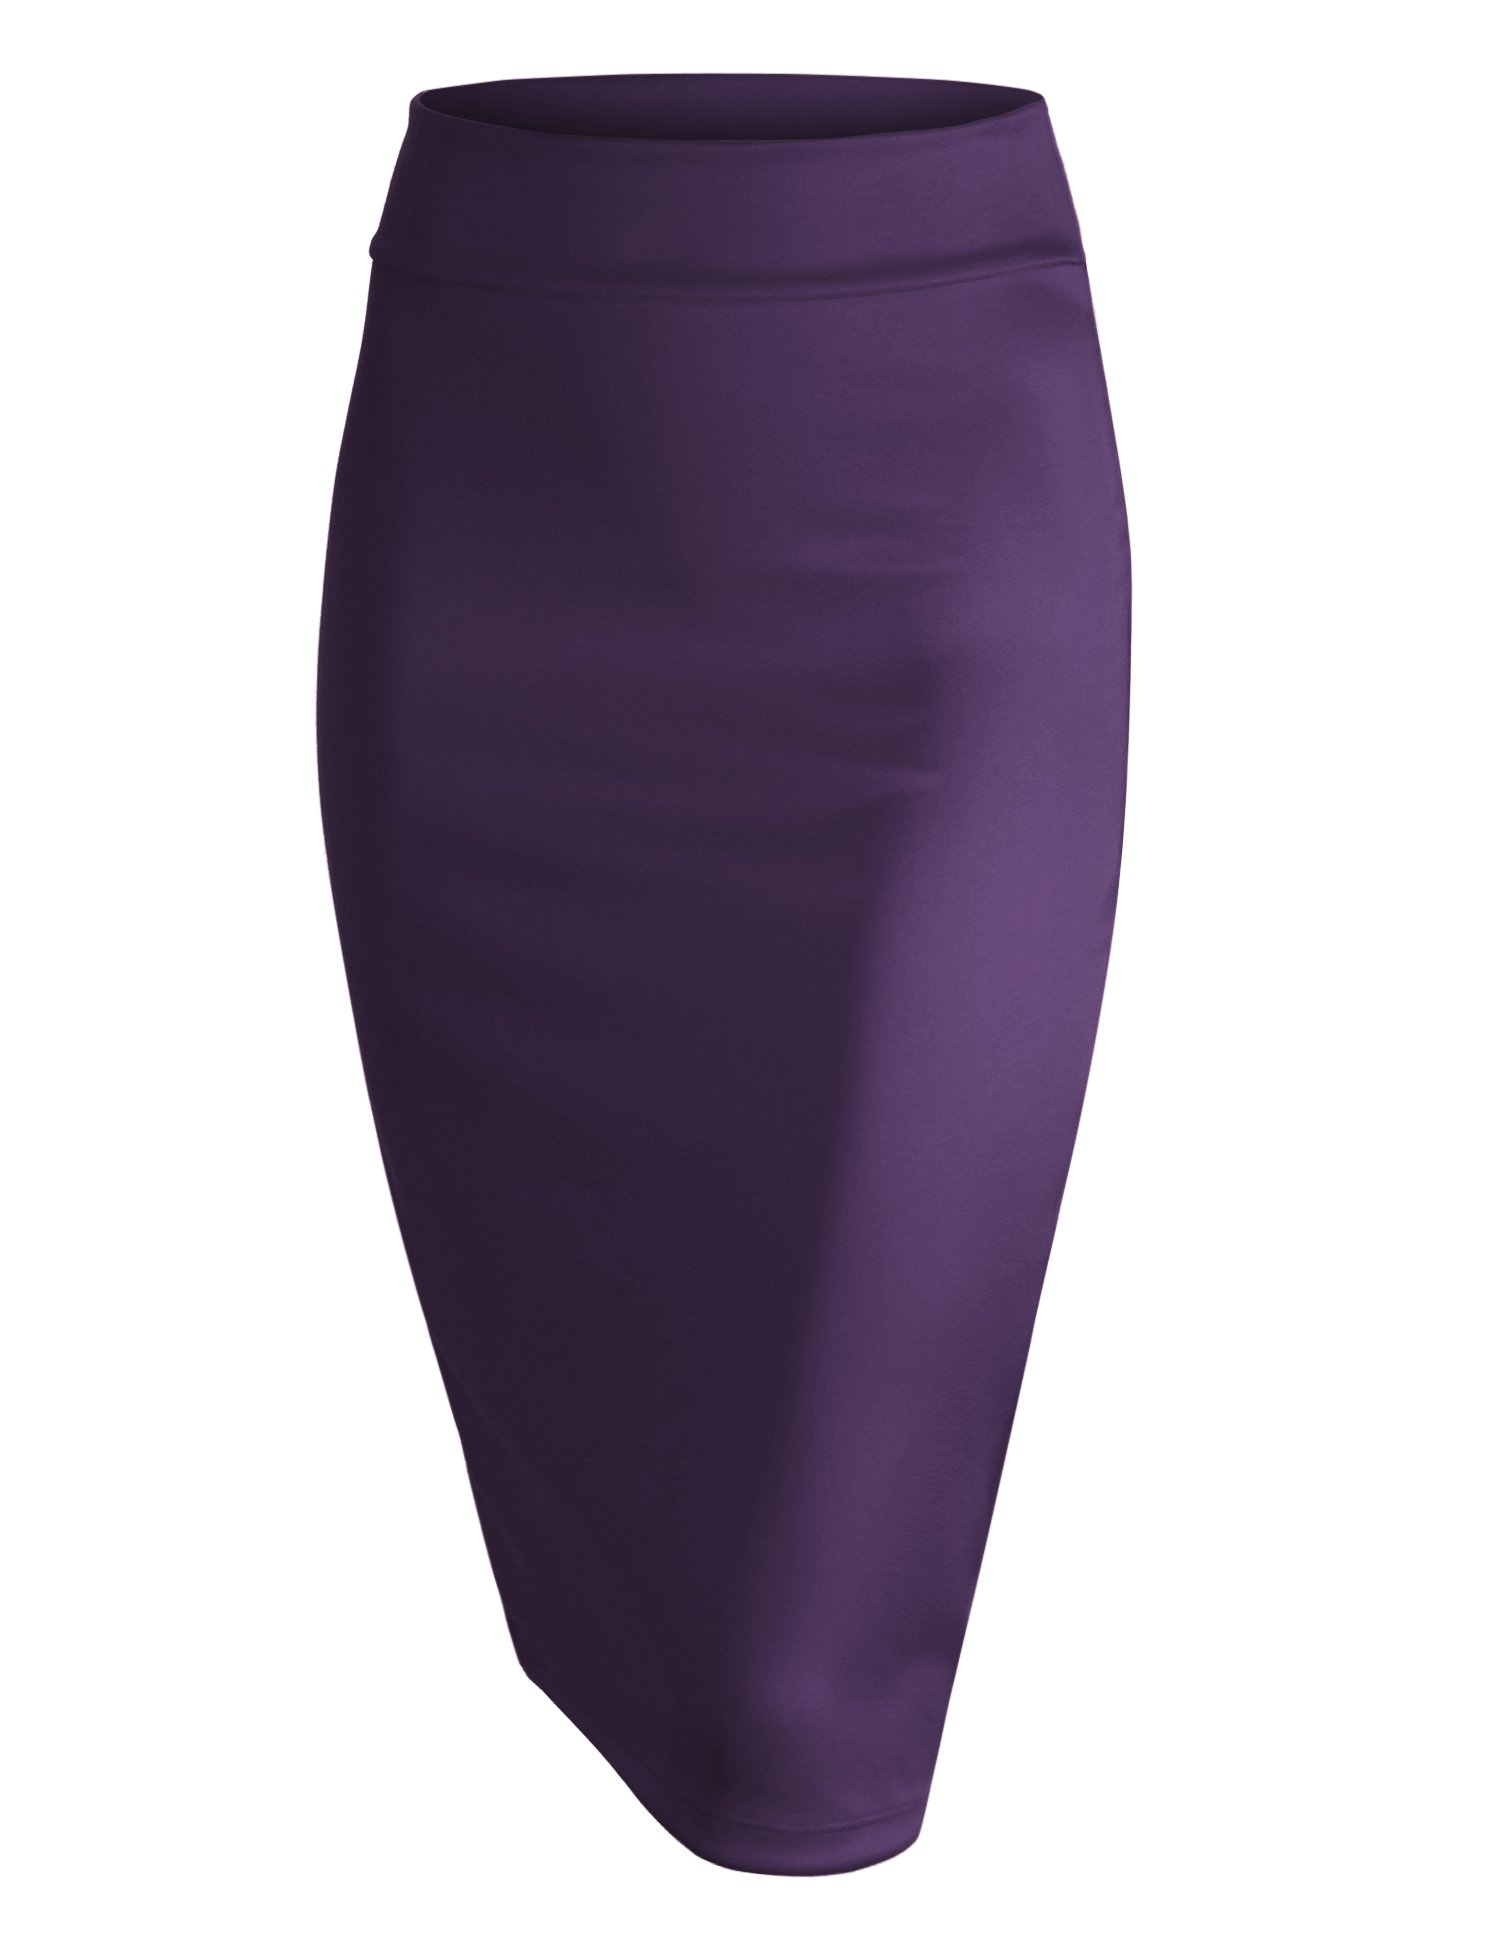 Made By Johnny WB700 Womens Scuba Midi Skirt L Eggplant by Made By Johnny